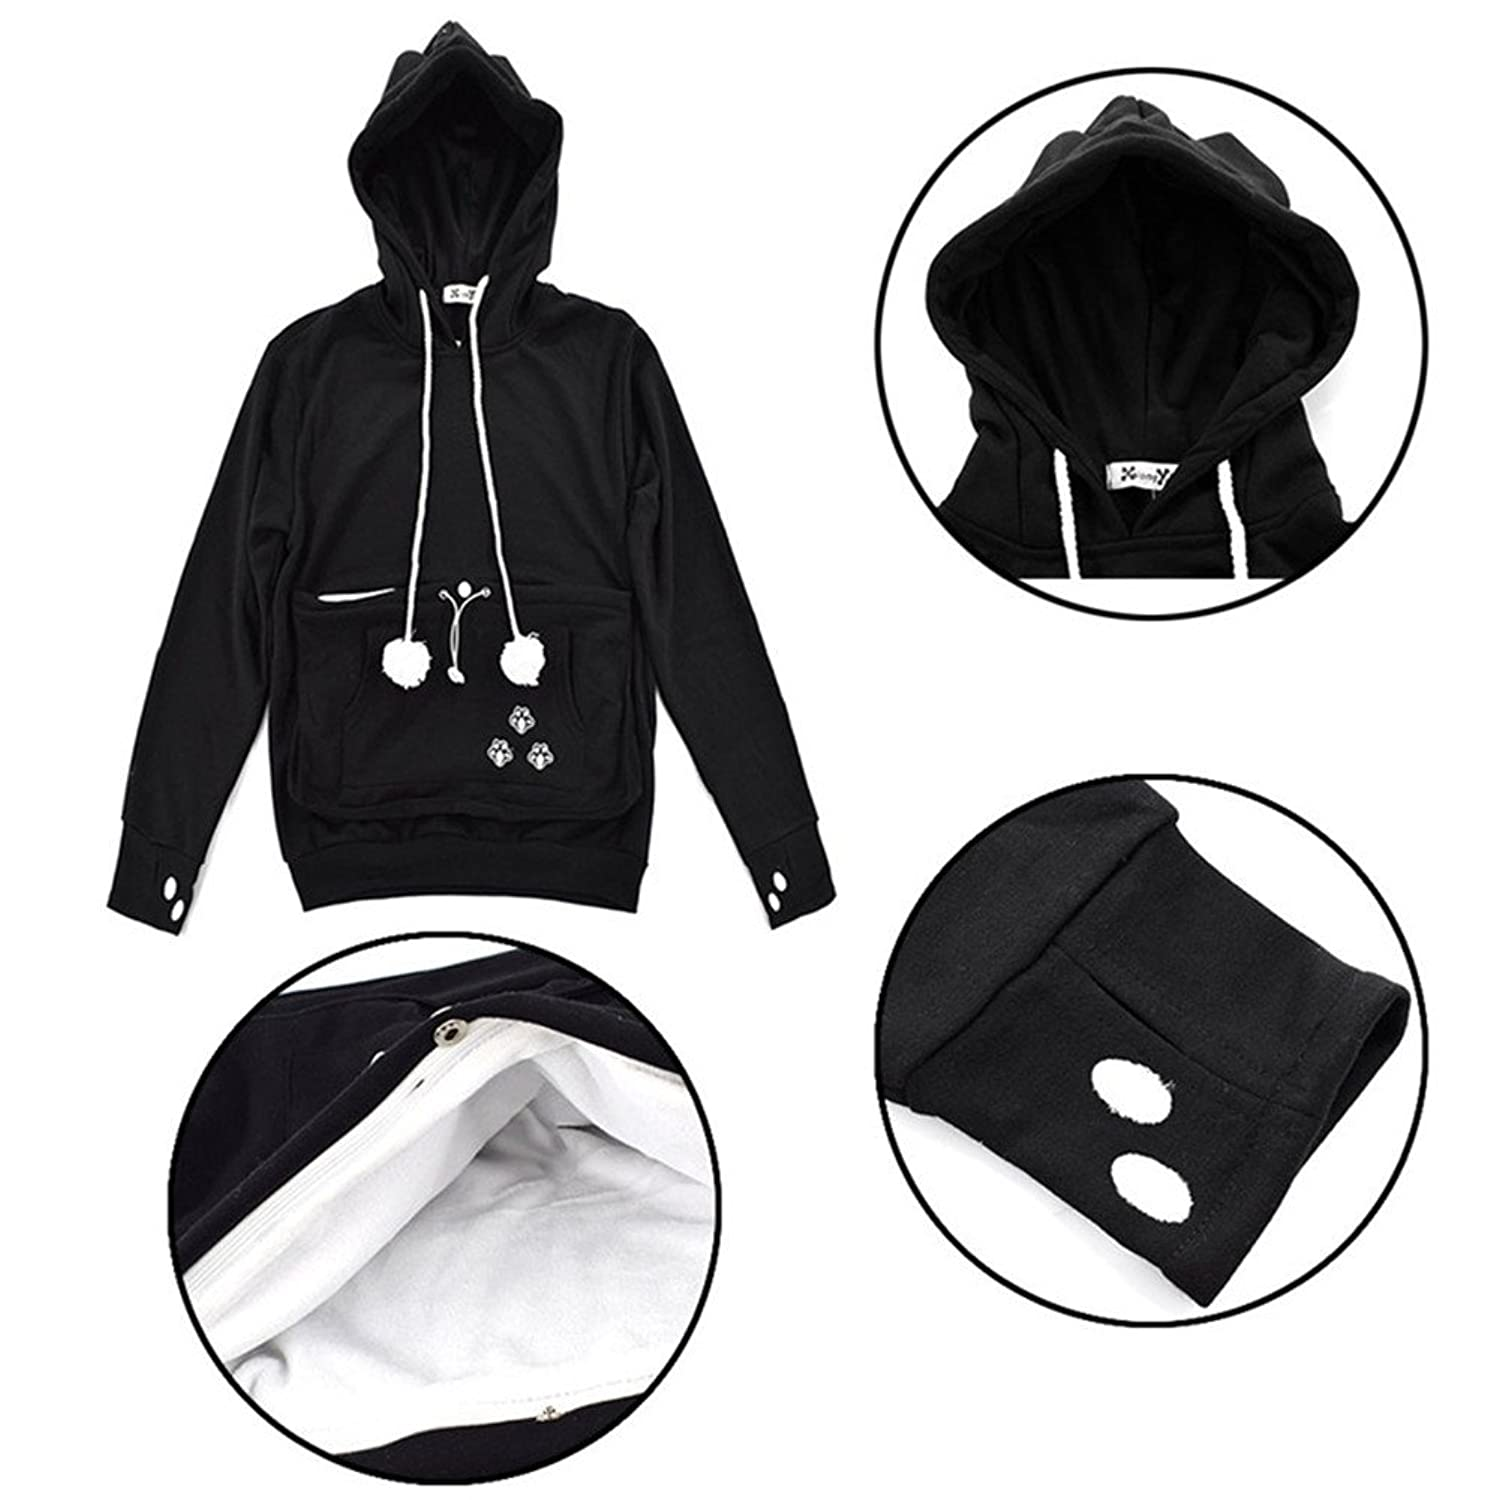 Xiongyi Unisex Mewgaroo Pet Holder Cat Eared Kangaroo Pouch - Hoodie with kangaroo pouch is the perfect cat accessory